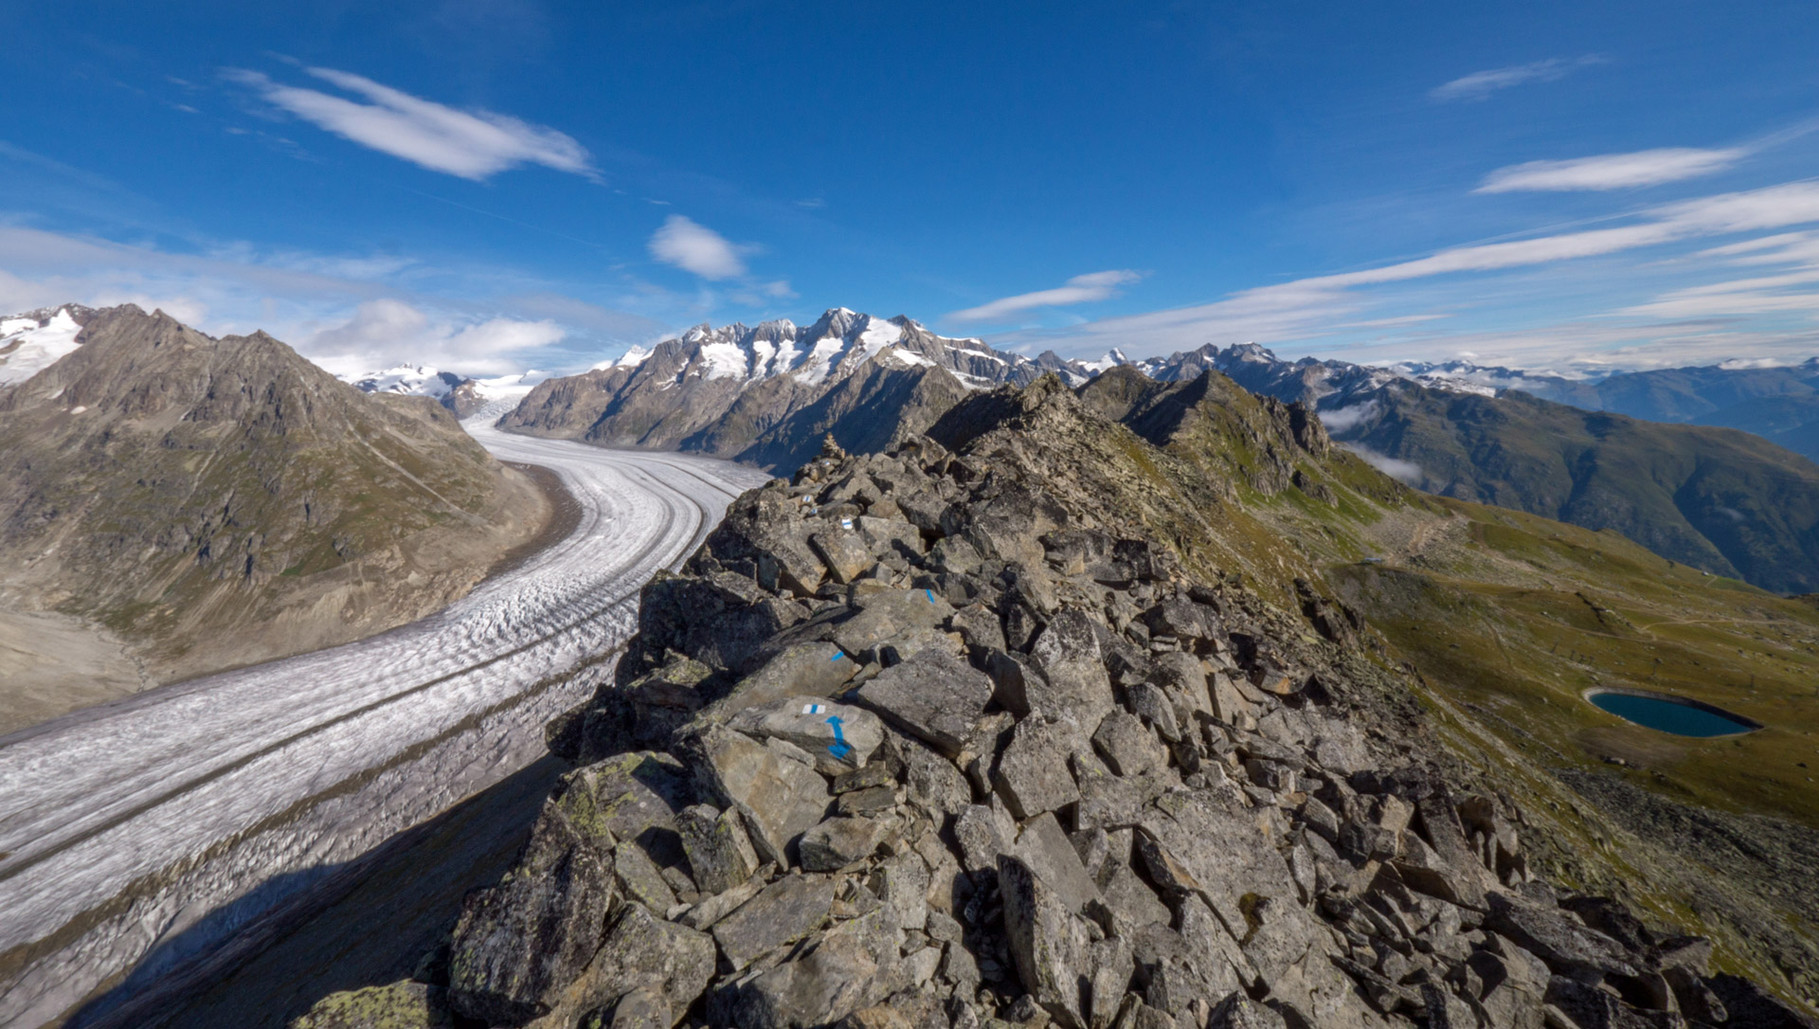 Glacier Aletsch in the Swiss Alps